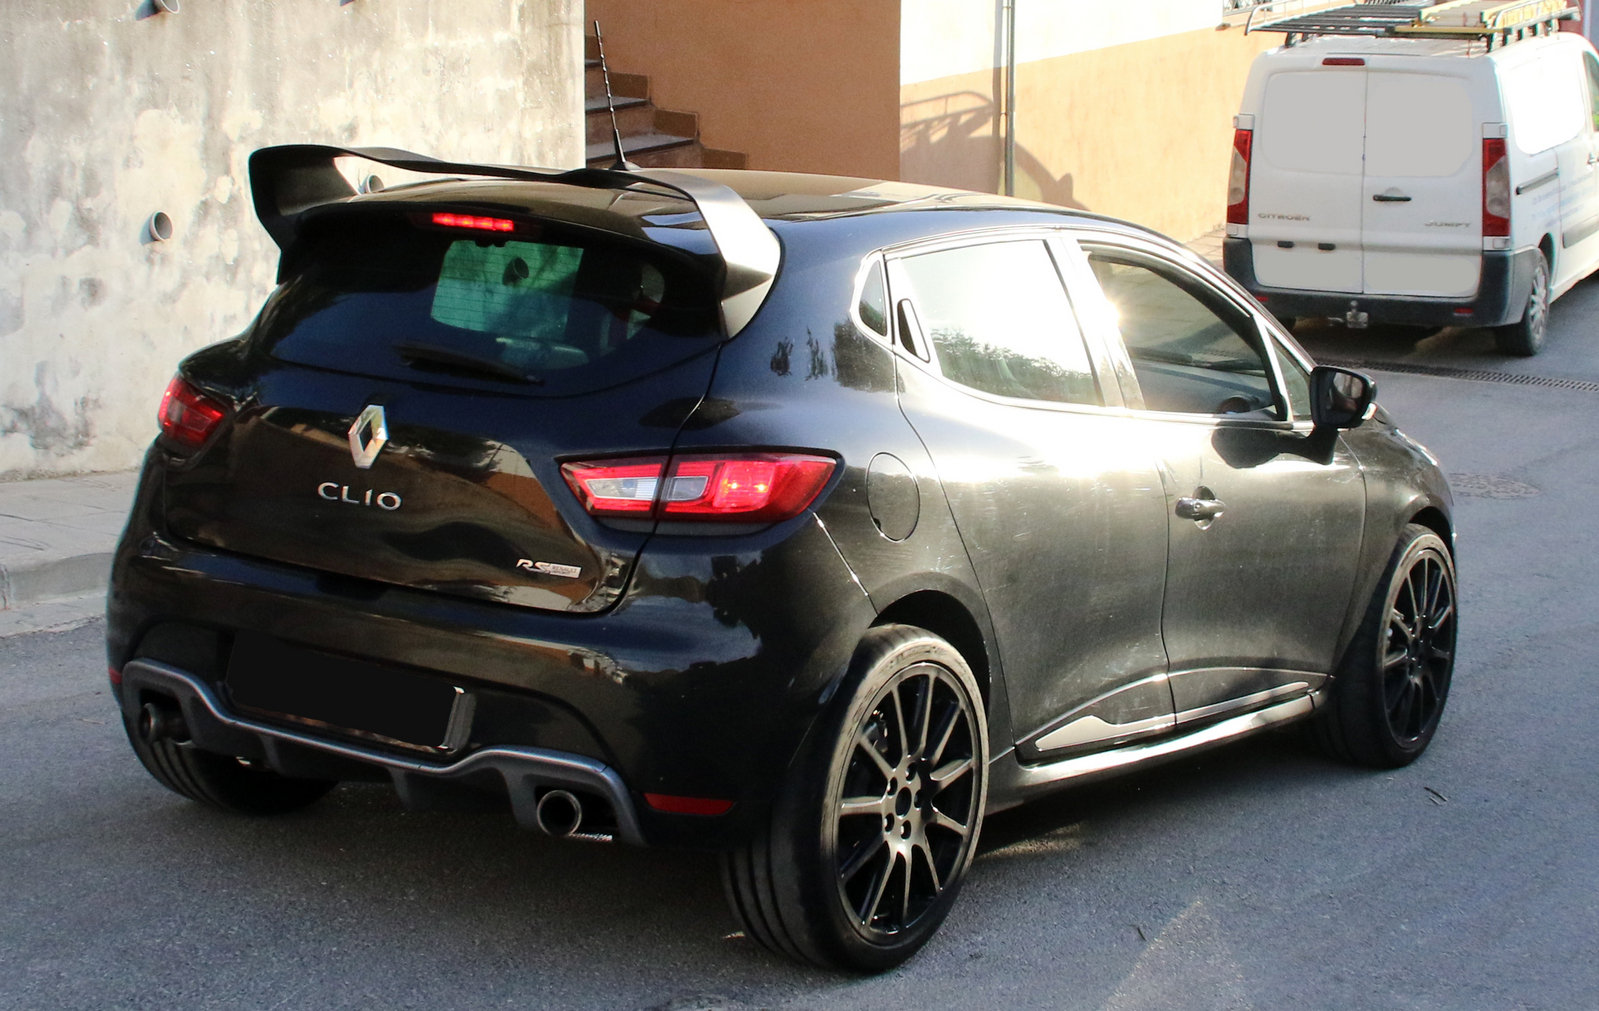 2018 renault clio r s 16 picture 688465 car review top speed. Black Bedroom Furniture Sets. Home Design Ideas